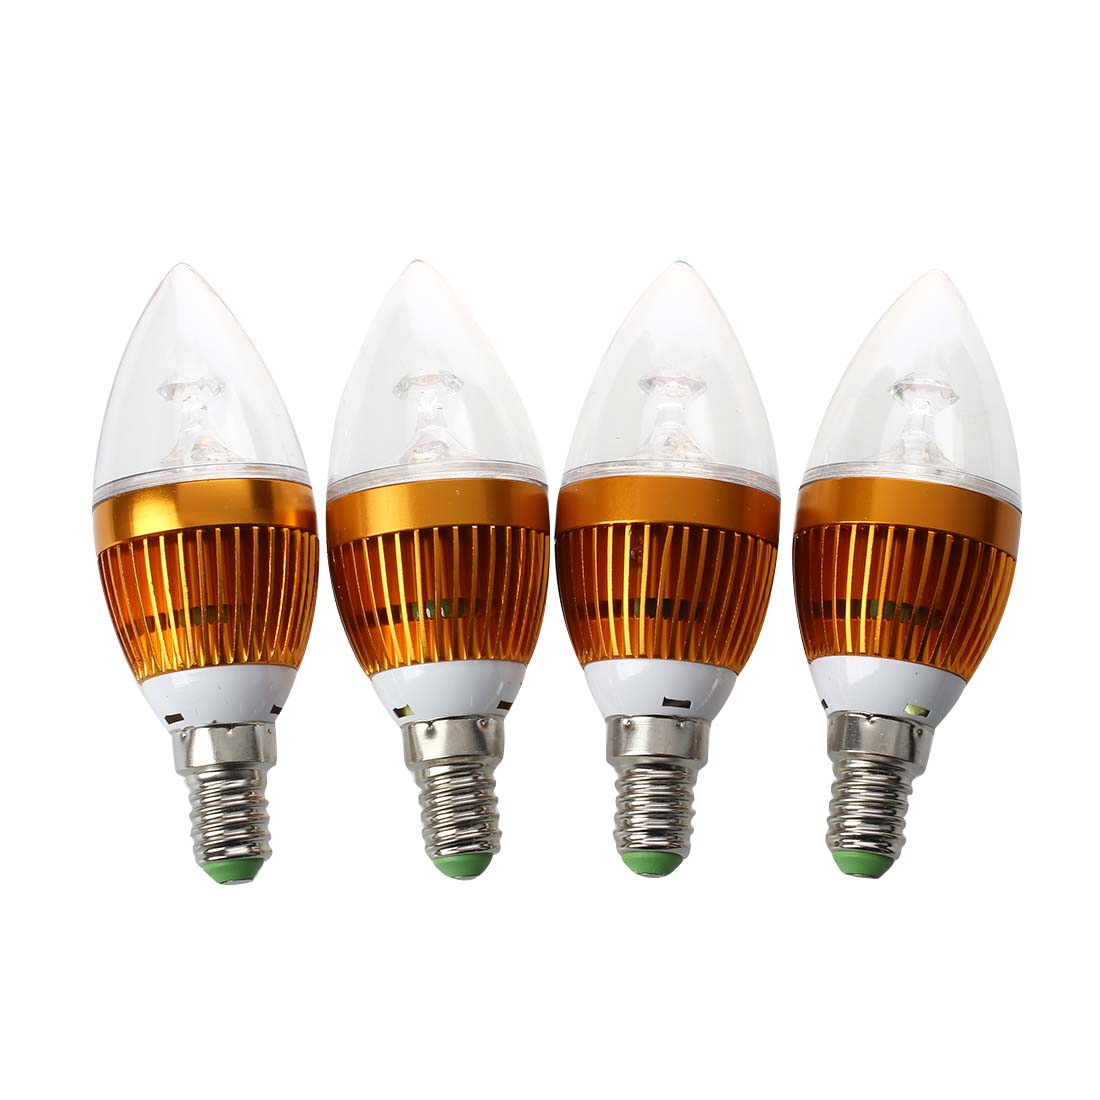 4 x E14 Spot Lamp Bulb 3 LEDs Warm White 3600K 6W